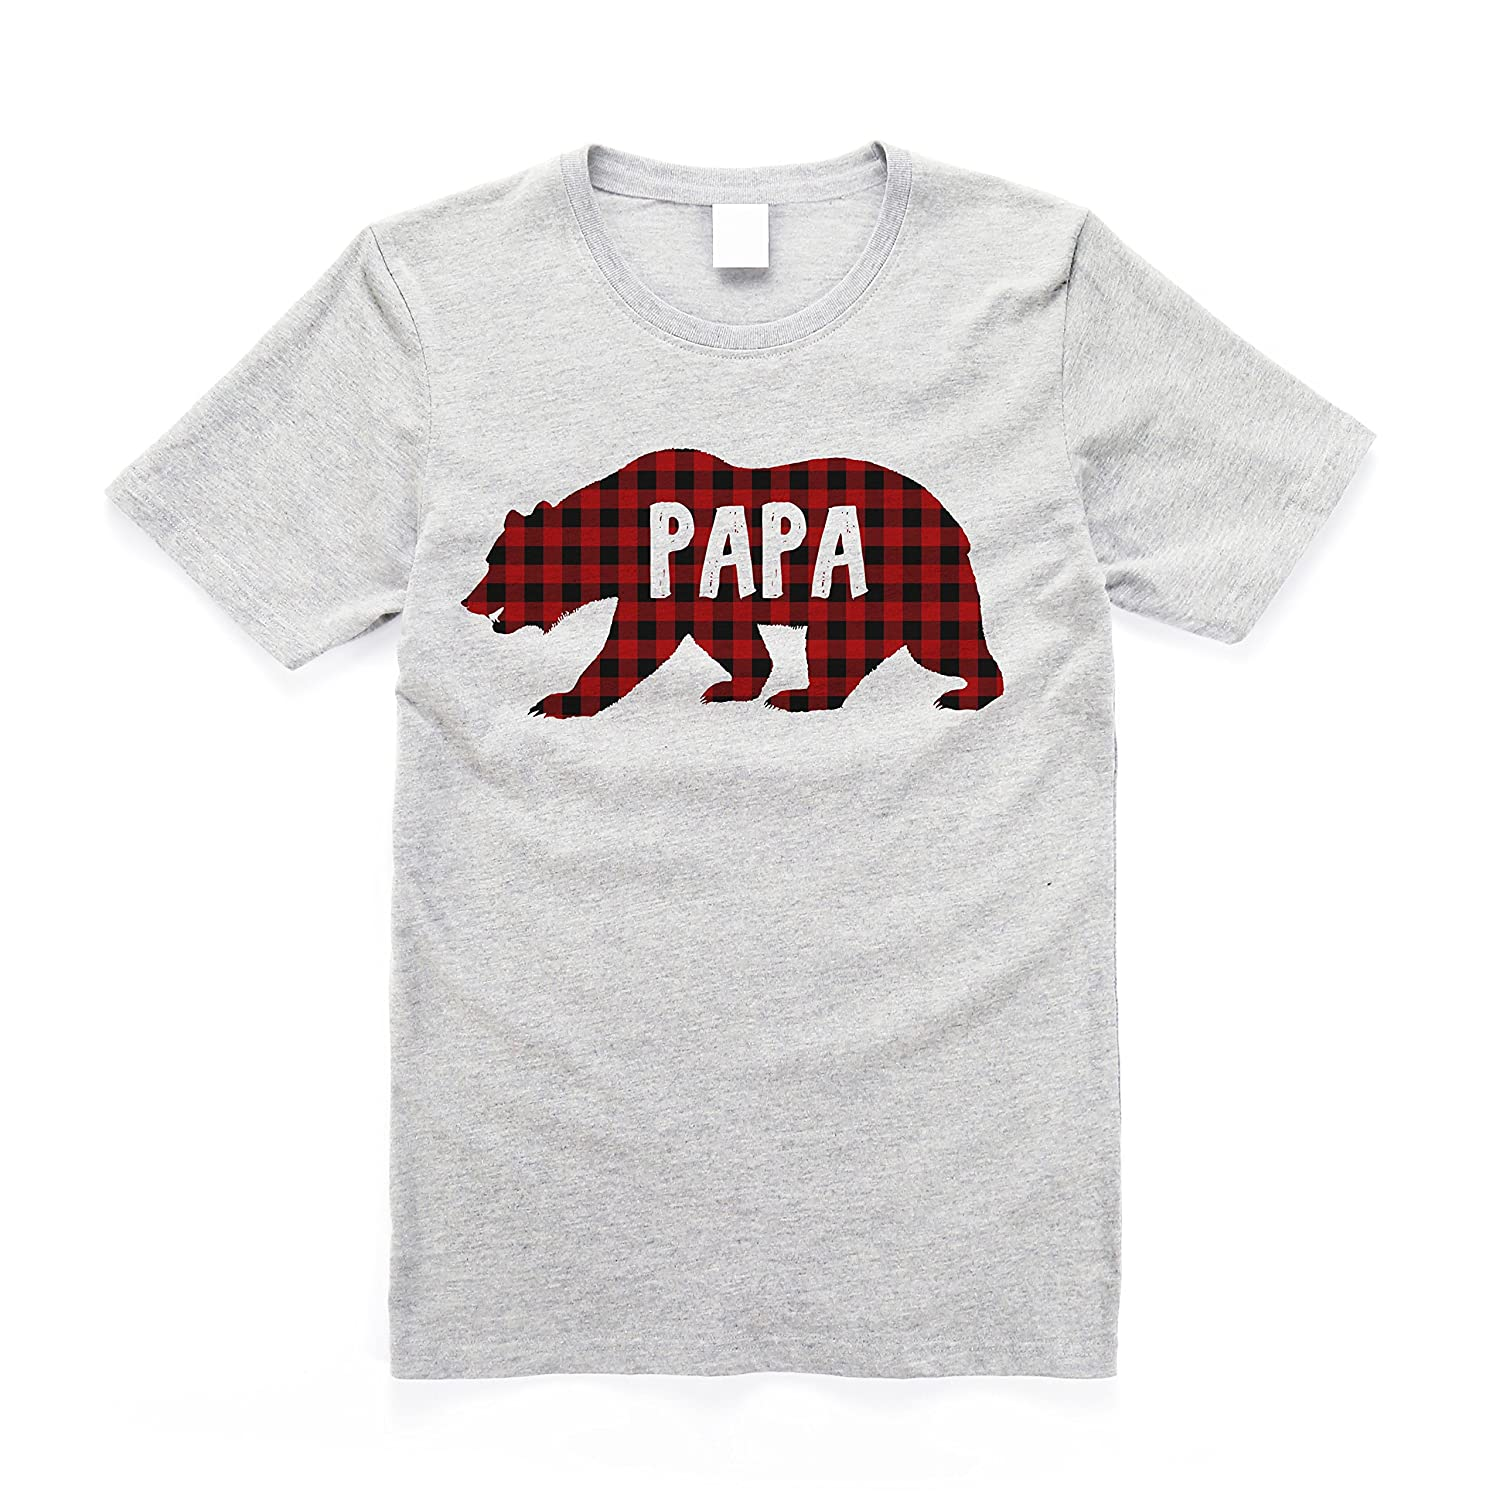 Amazon.com  Global Street Designs Men s Buffalo Plaid Papa Bear Cotton T- Shirt  Clothing a72222f87